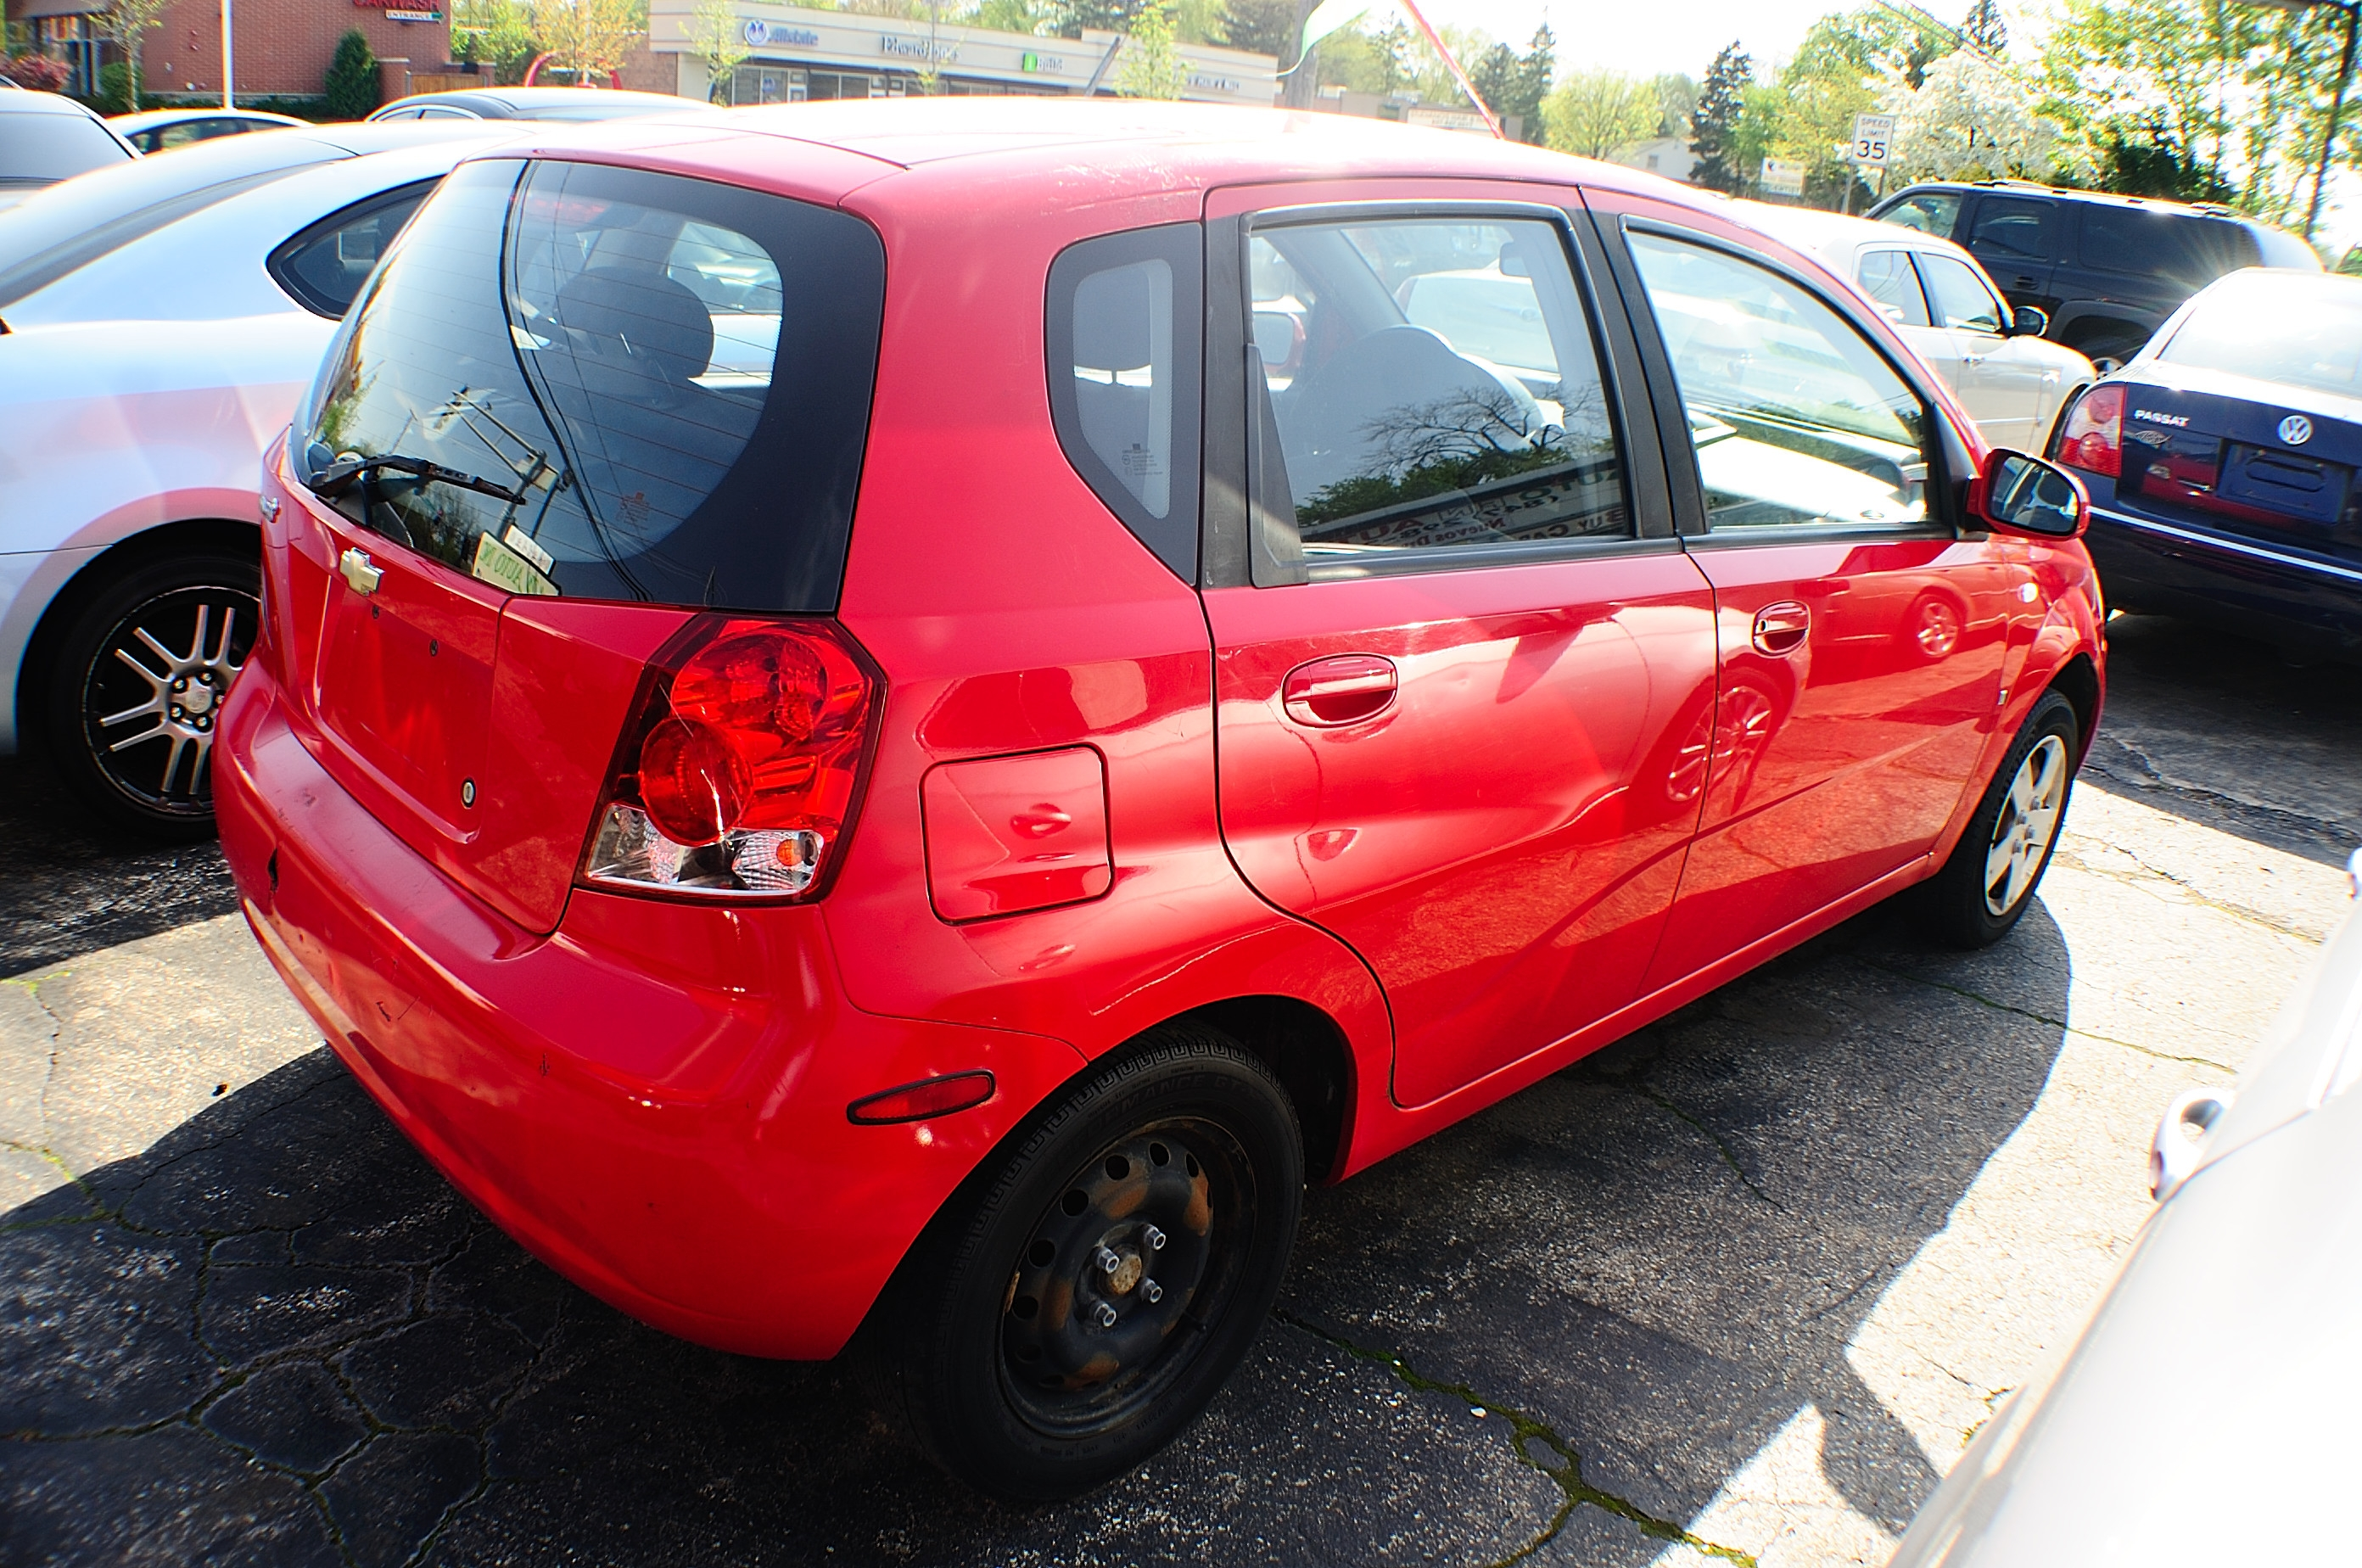 2008 Chevrolet Aveo Red Manual Used Compact car sale Downers Grove Carpentersville Cicero